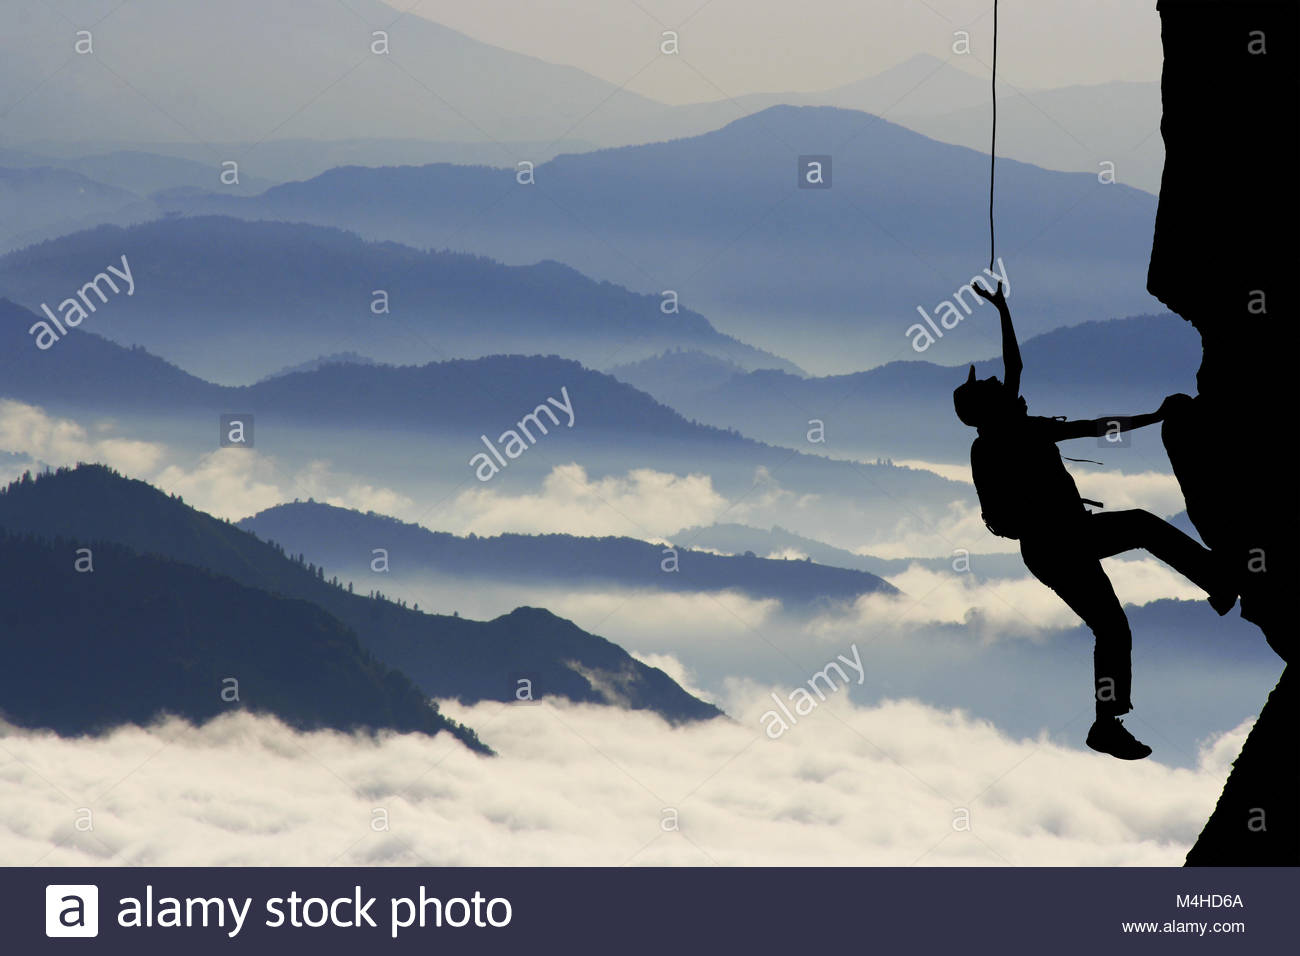 Climbing difficulties and help - Stock Image